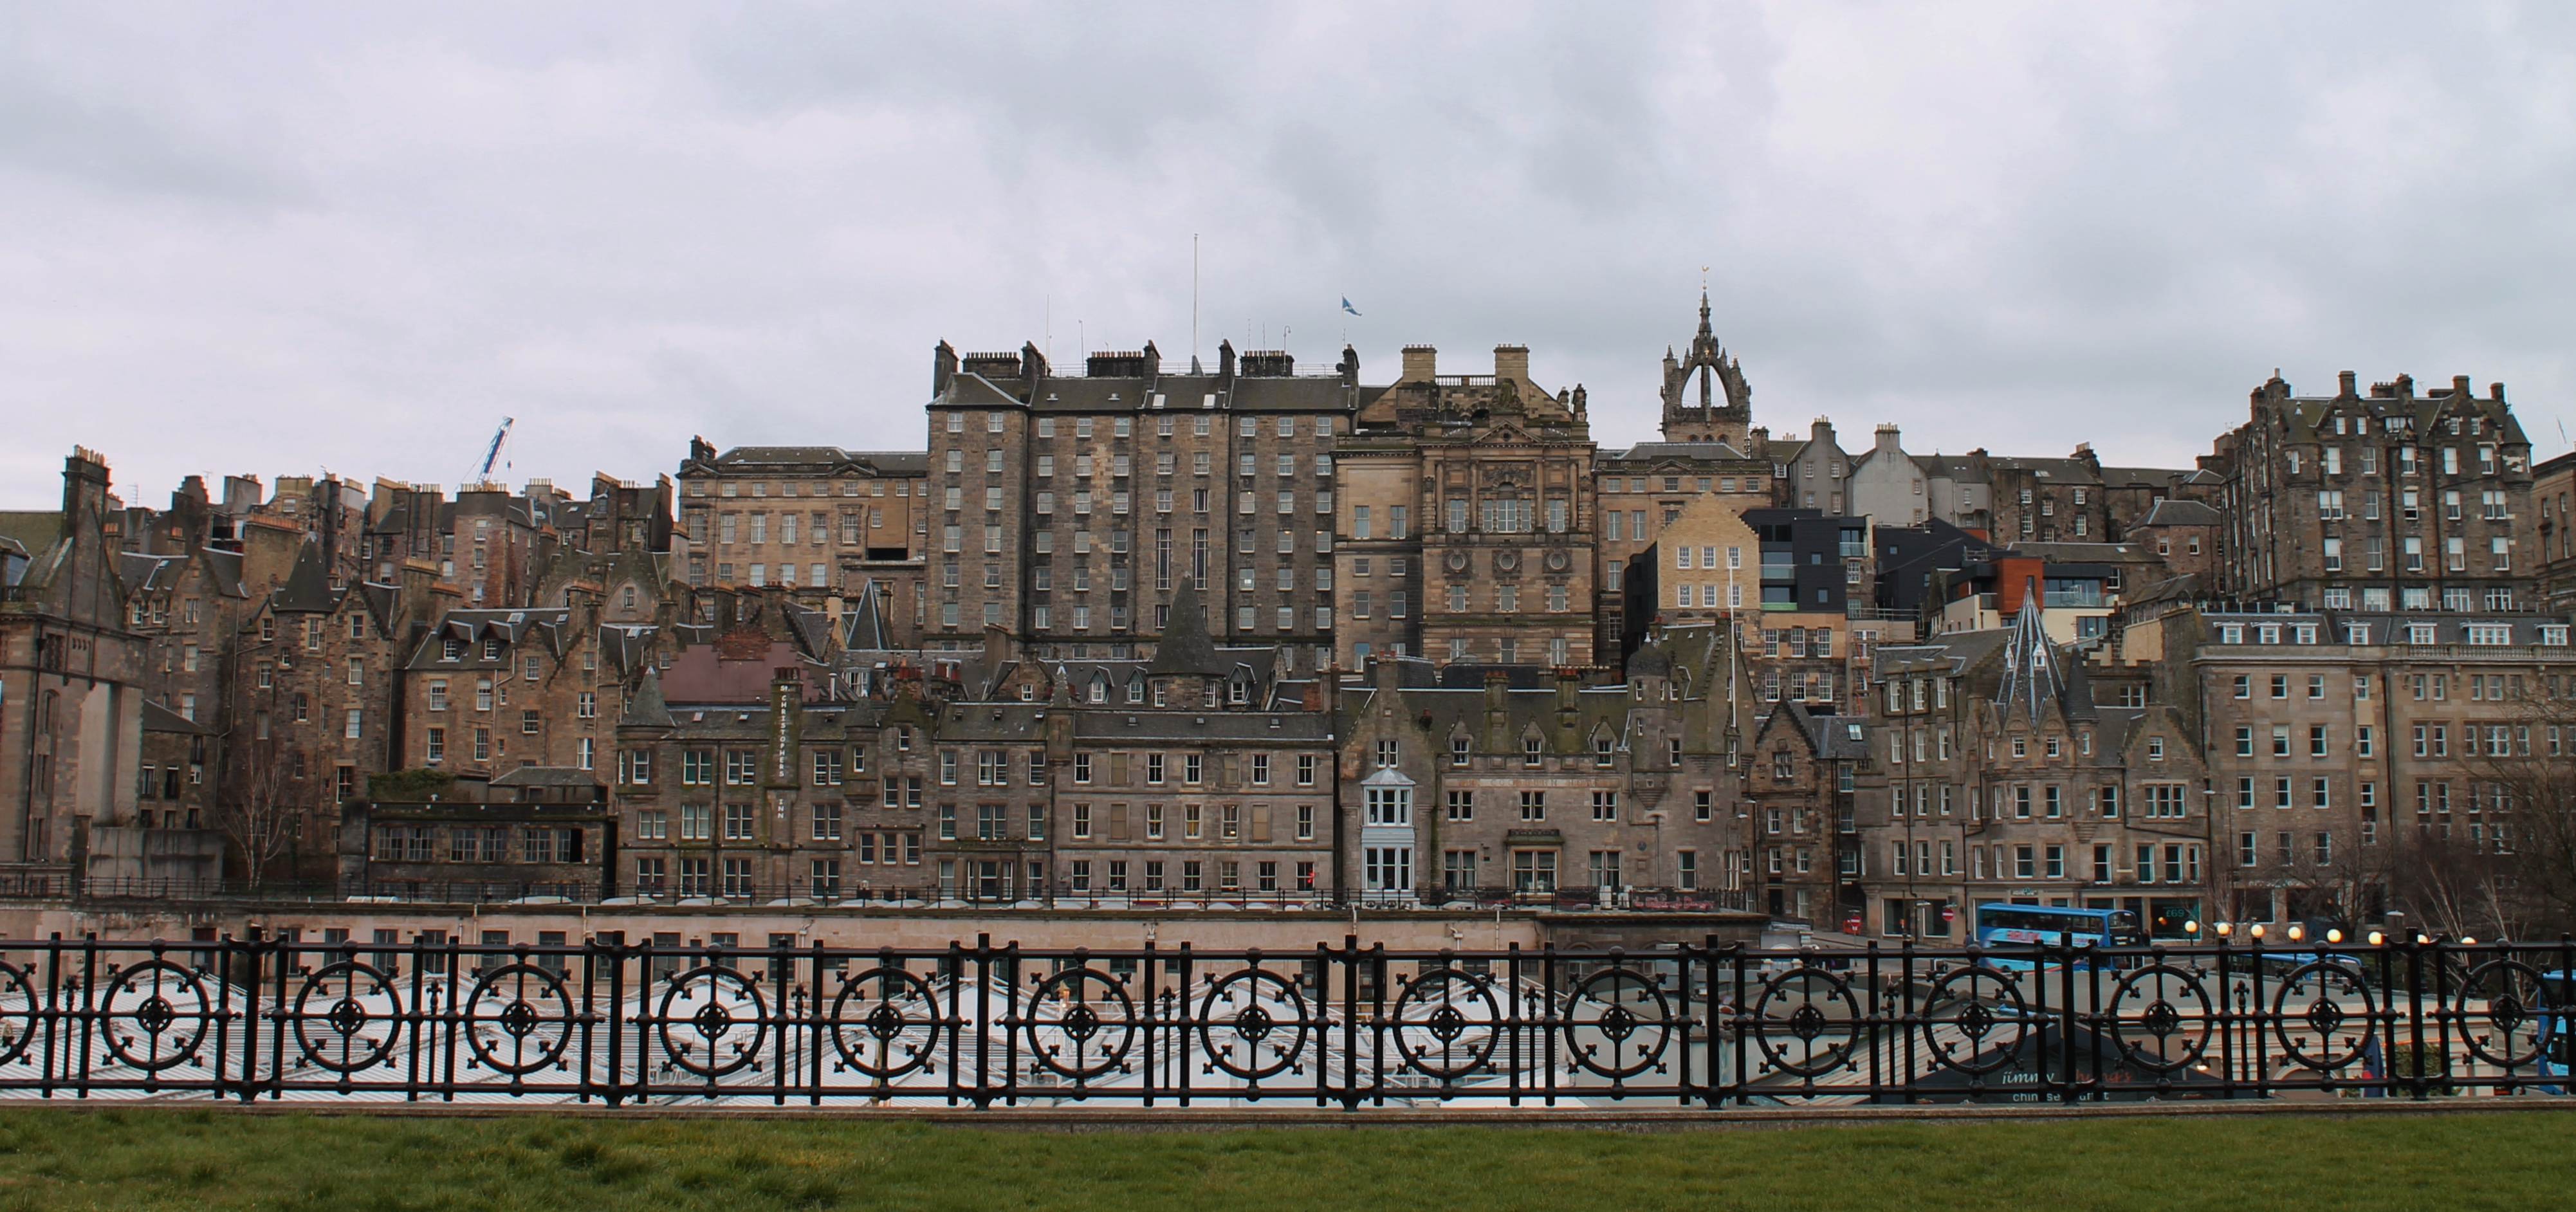 In Scotland, I'm Home: Musings on Edinburgh